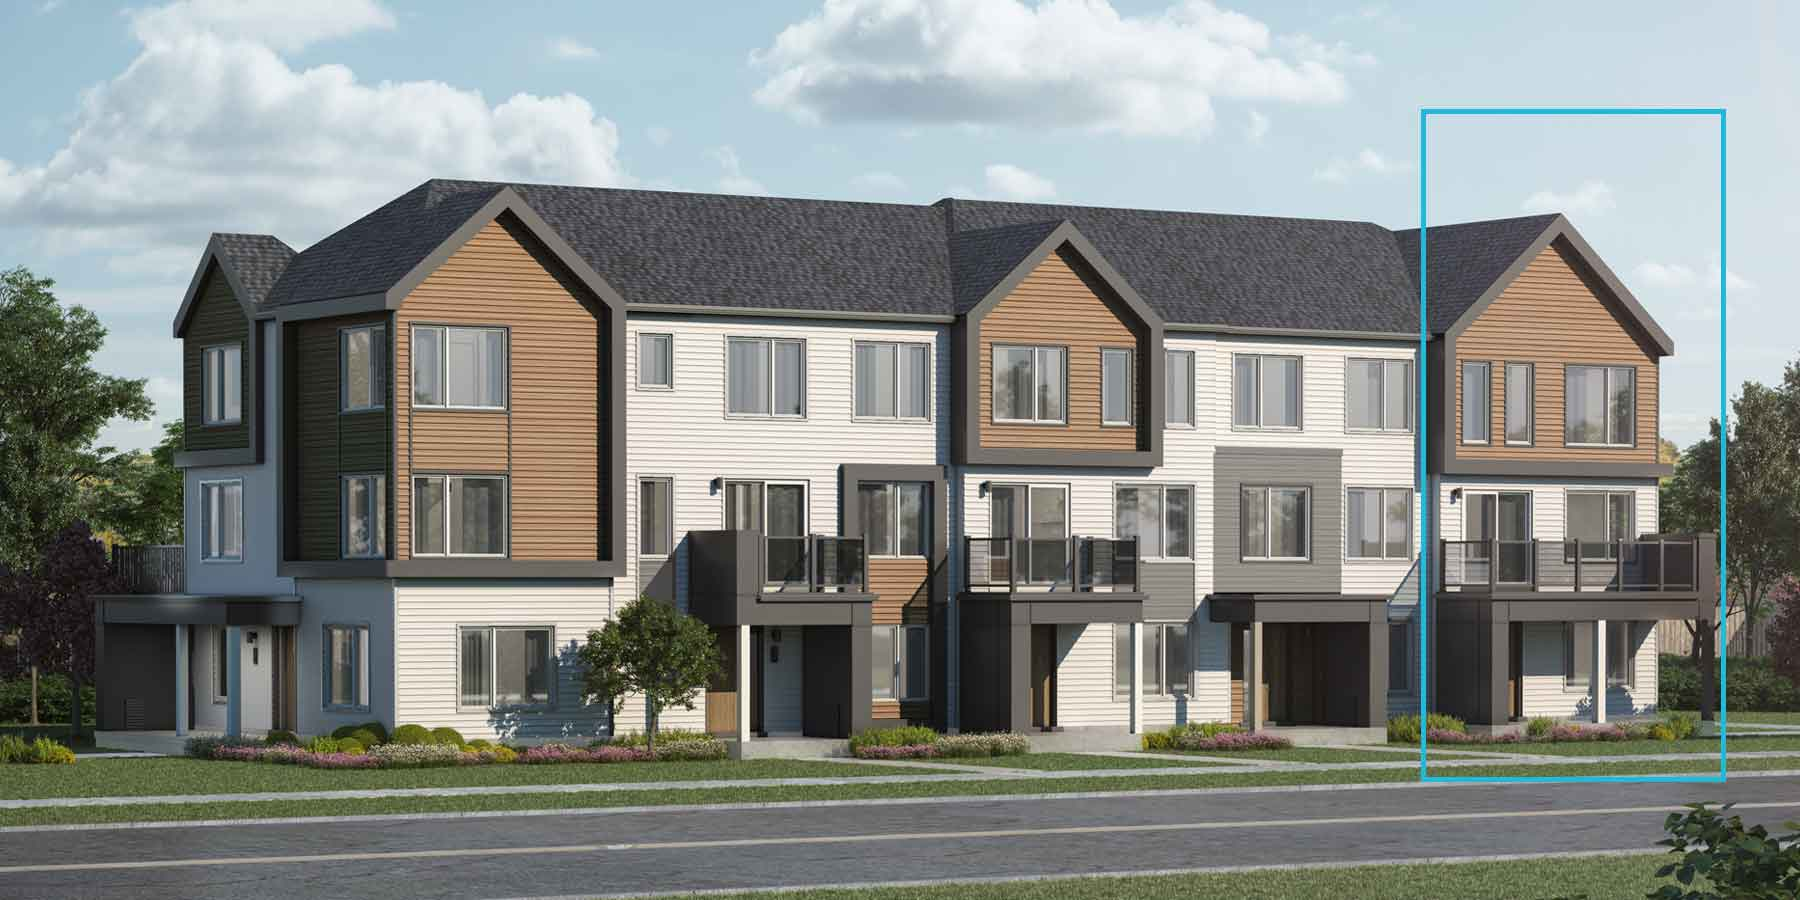 Rockcliffe End Plan TownHomes at Promenade in Barrhaven Ontario by Mattamy Homes